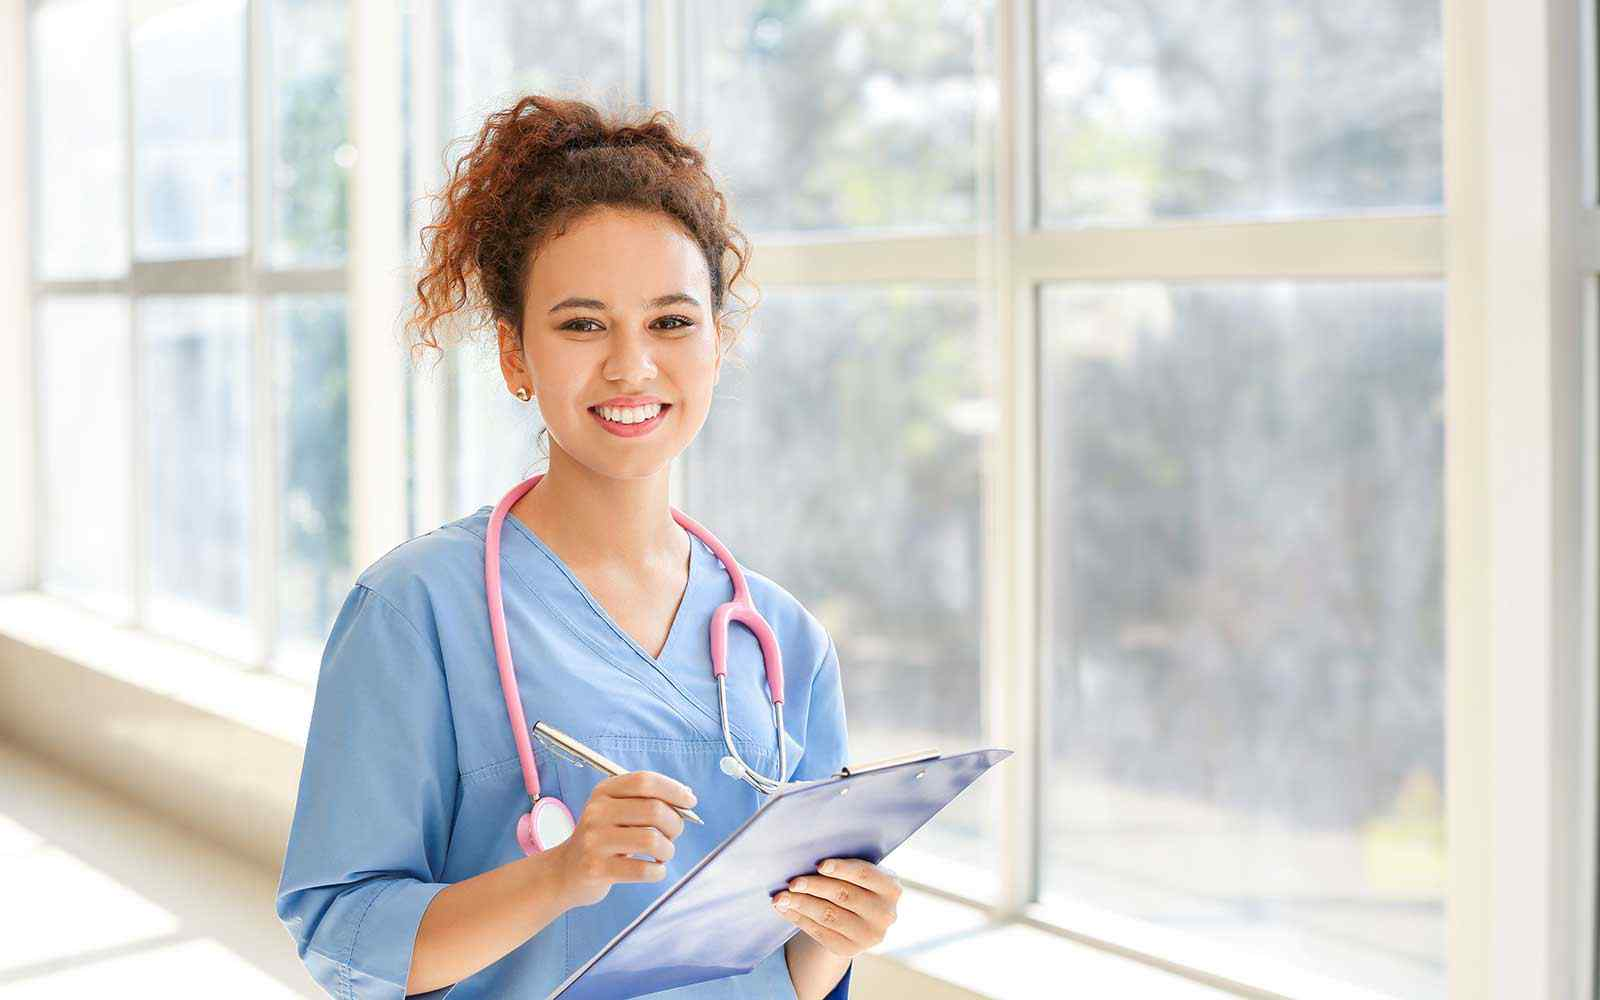 A student in scrubs smiles at the camera. She is holding a clipboard and stethoscope.